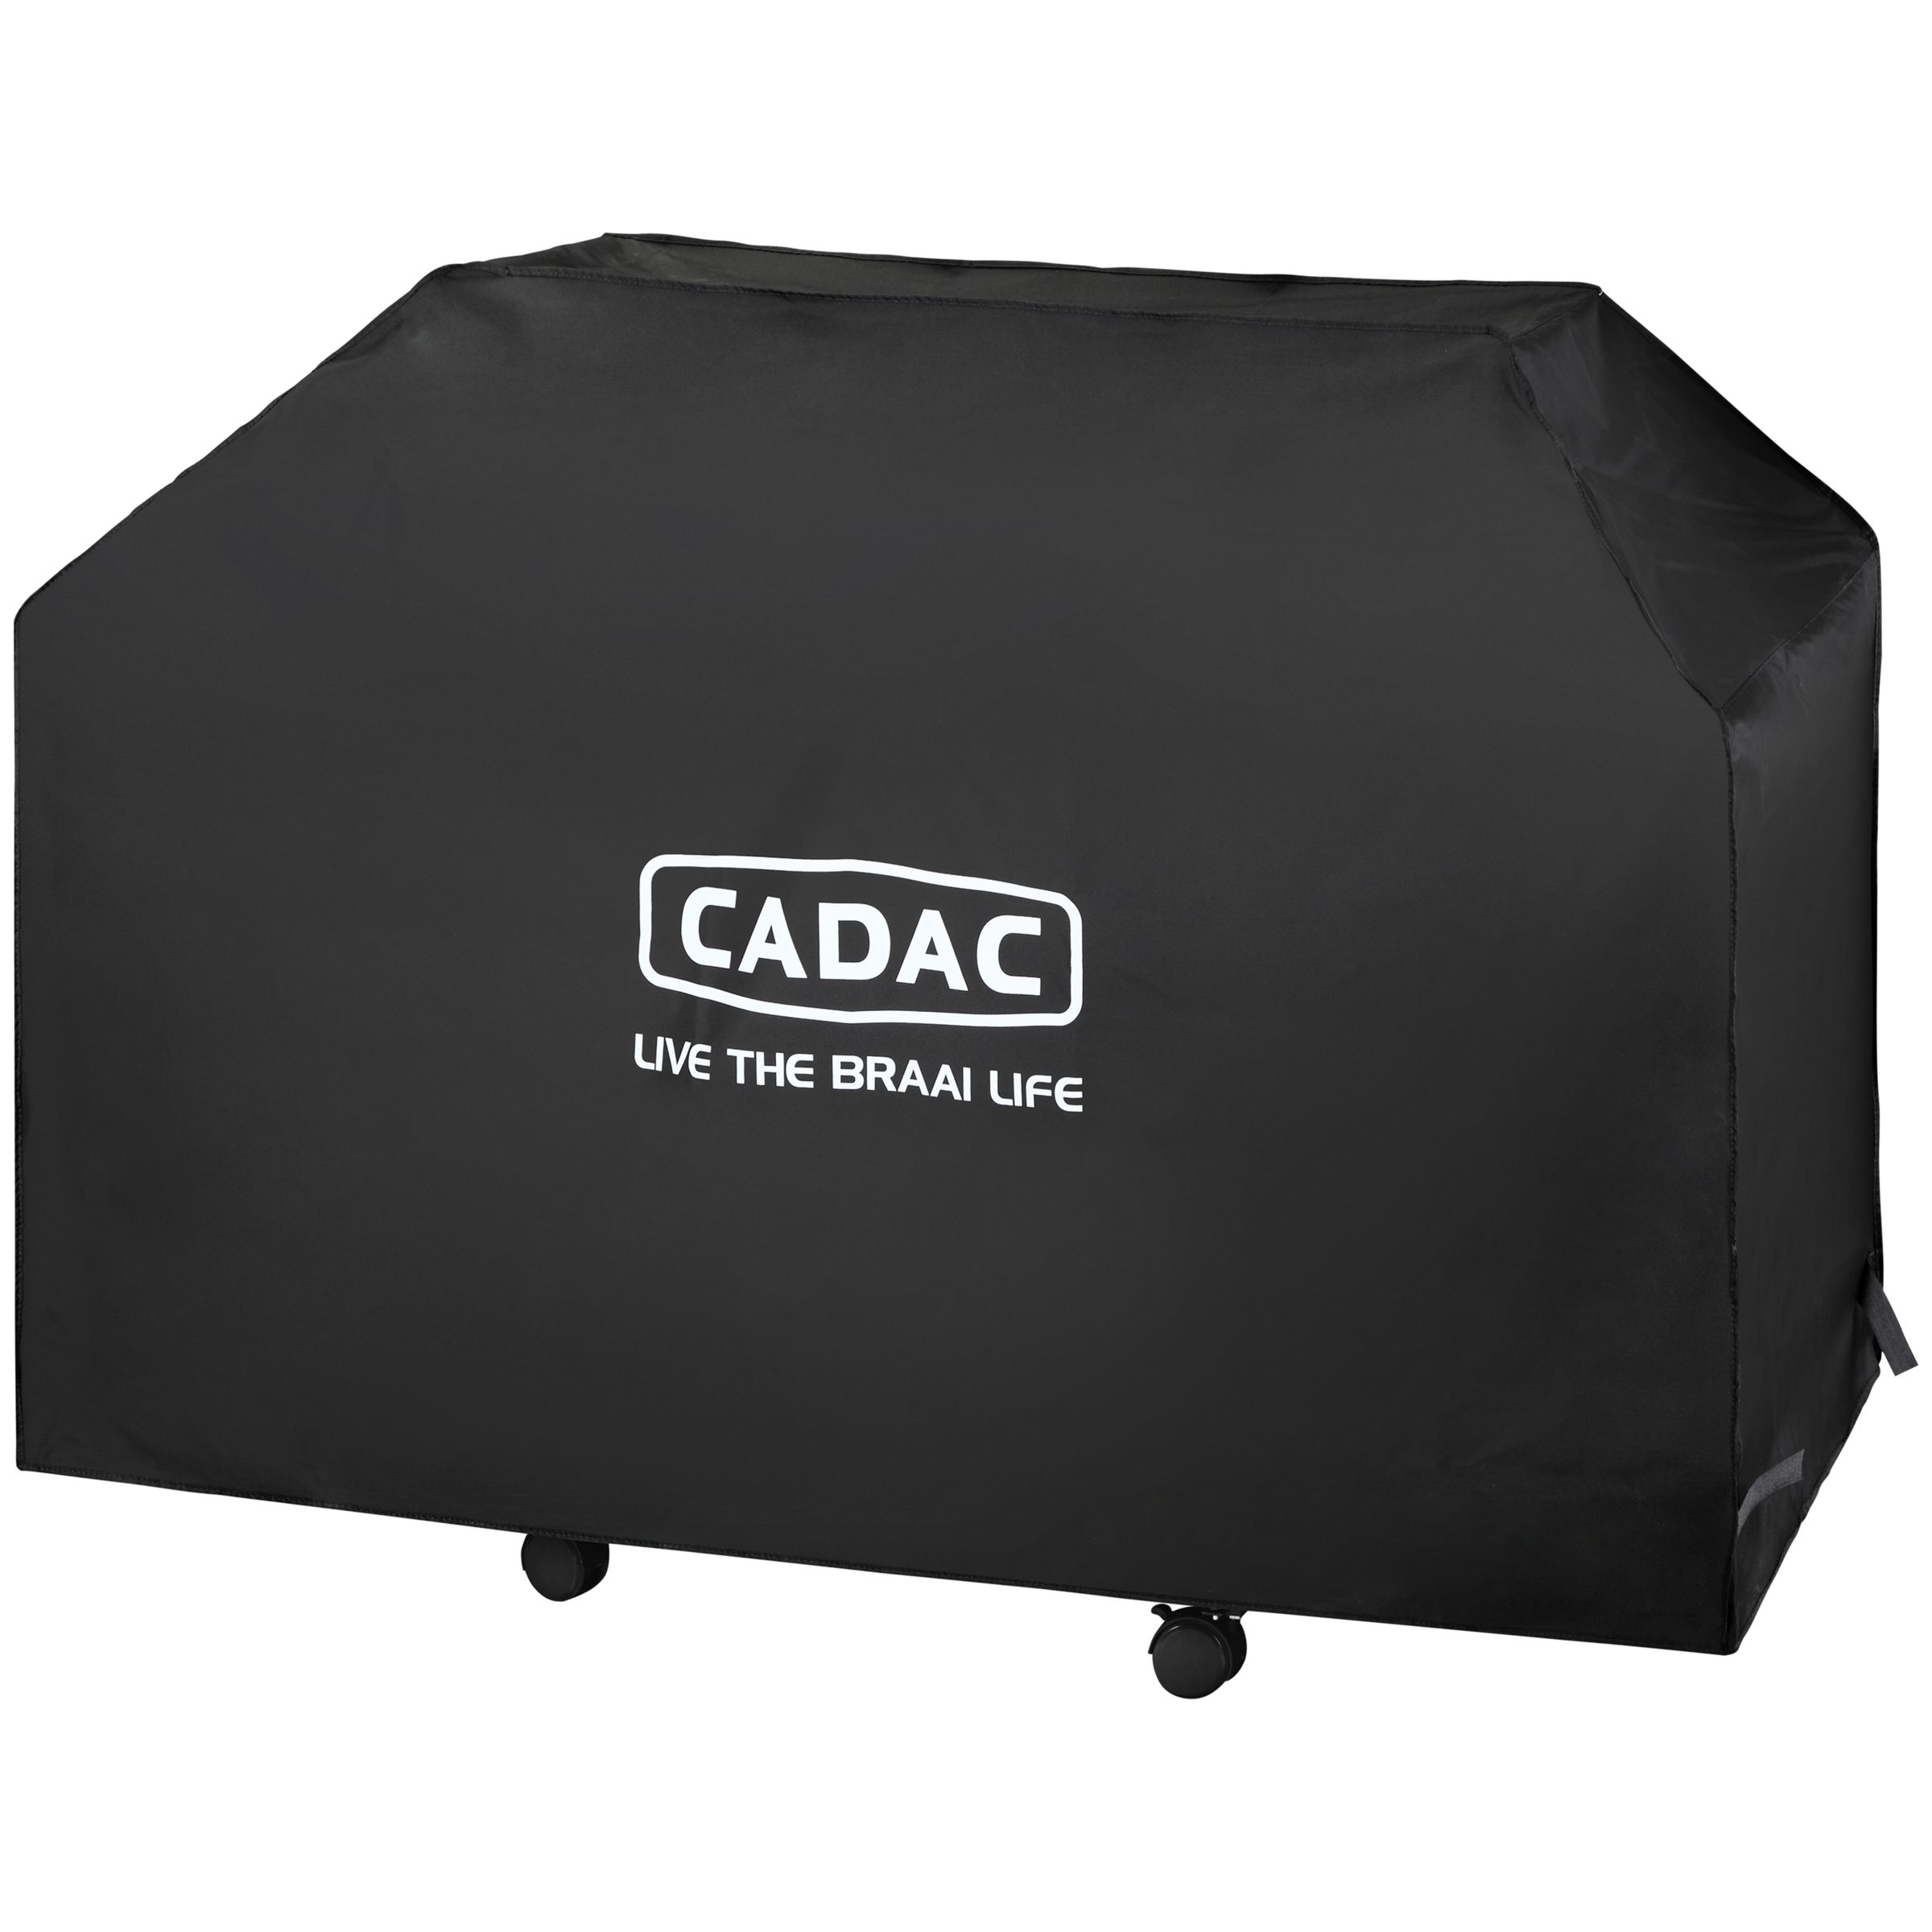 Cadac 2 Burner Stratos Barbecue Cover